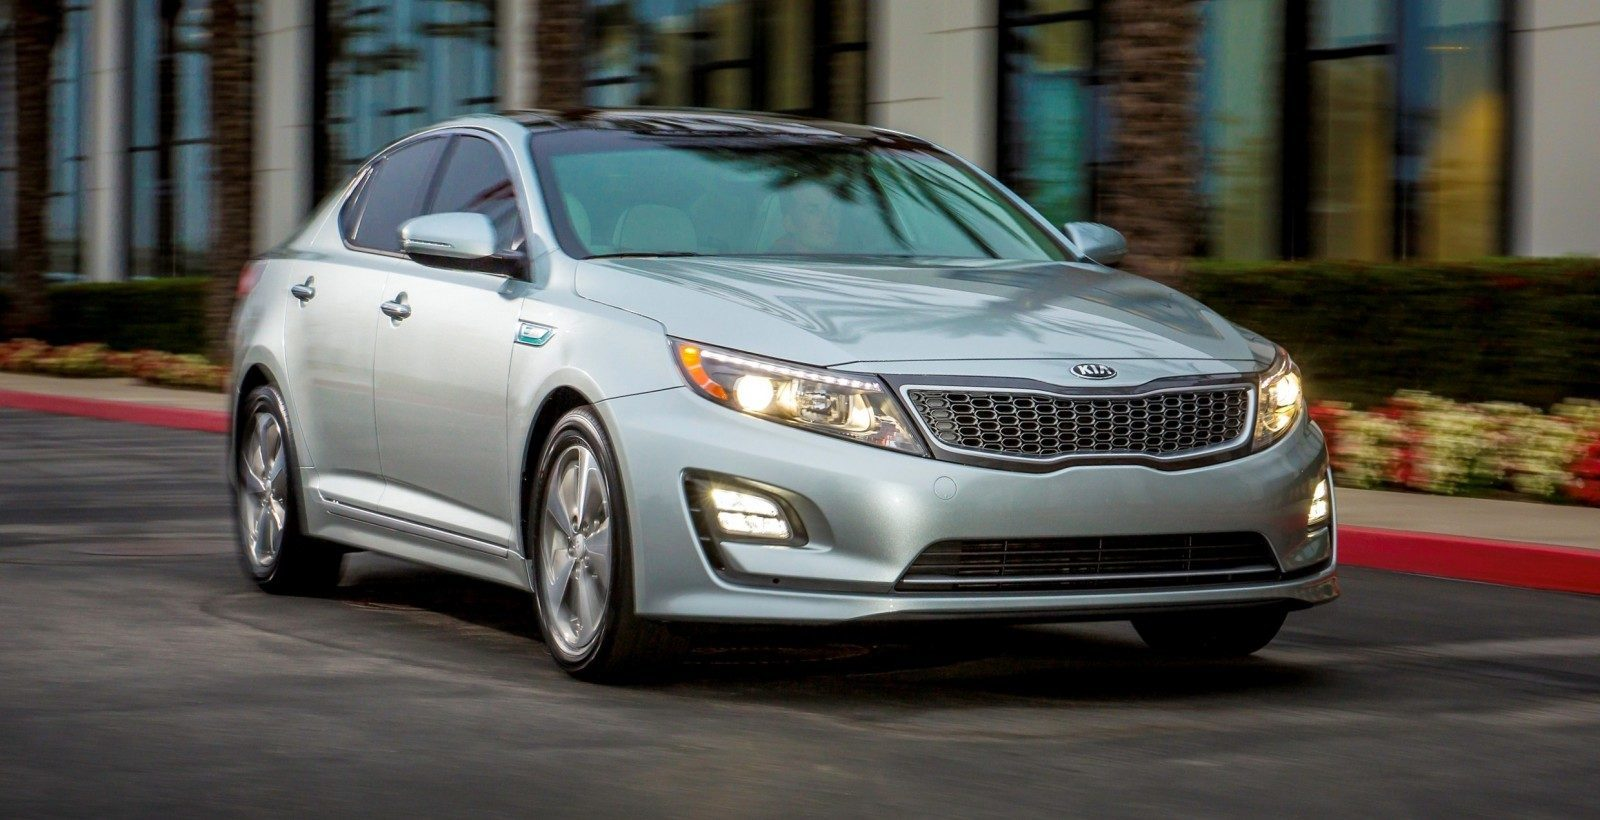 2014 Kia Optima Hybrid Updated With New Grille and LEDs Front and Rear - Specs, Features and Pricing 21